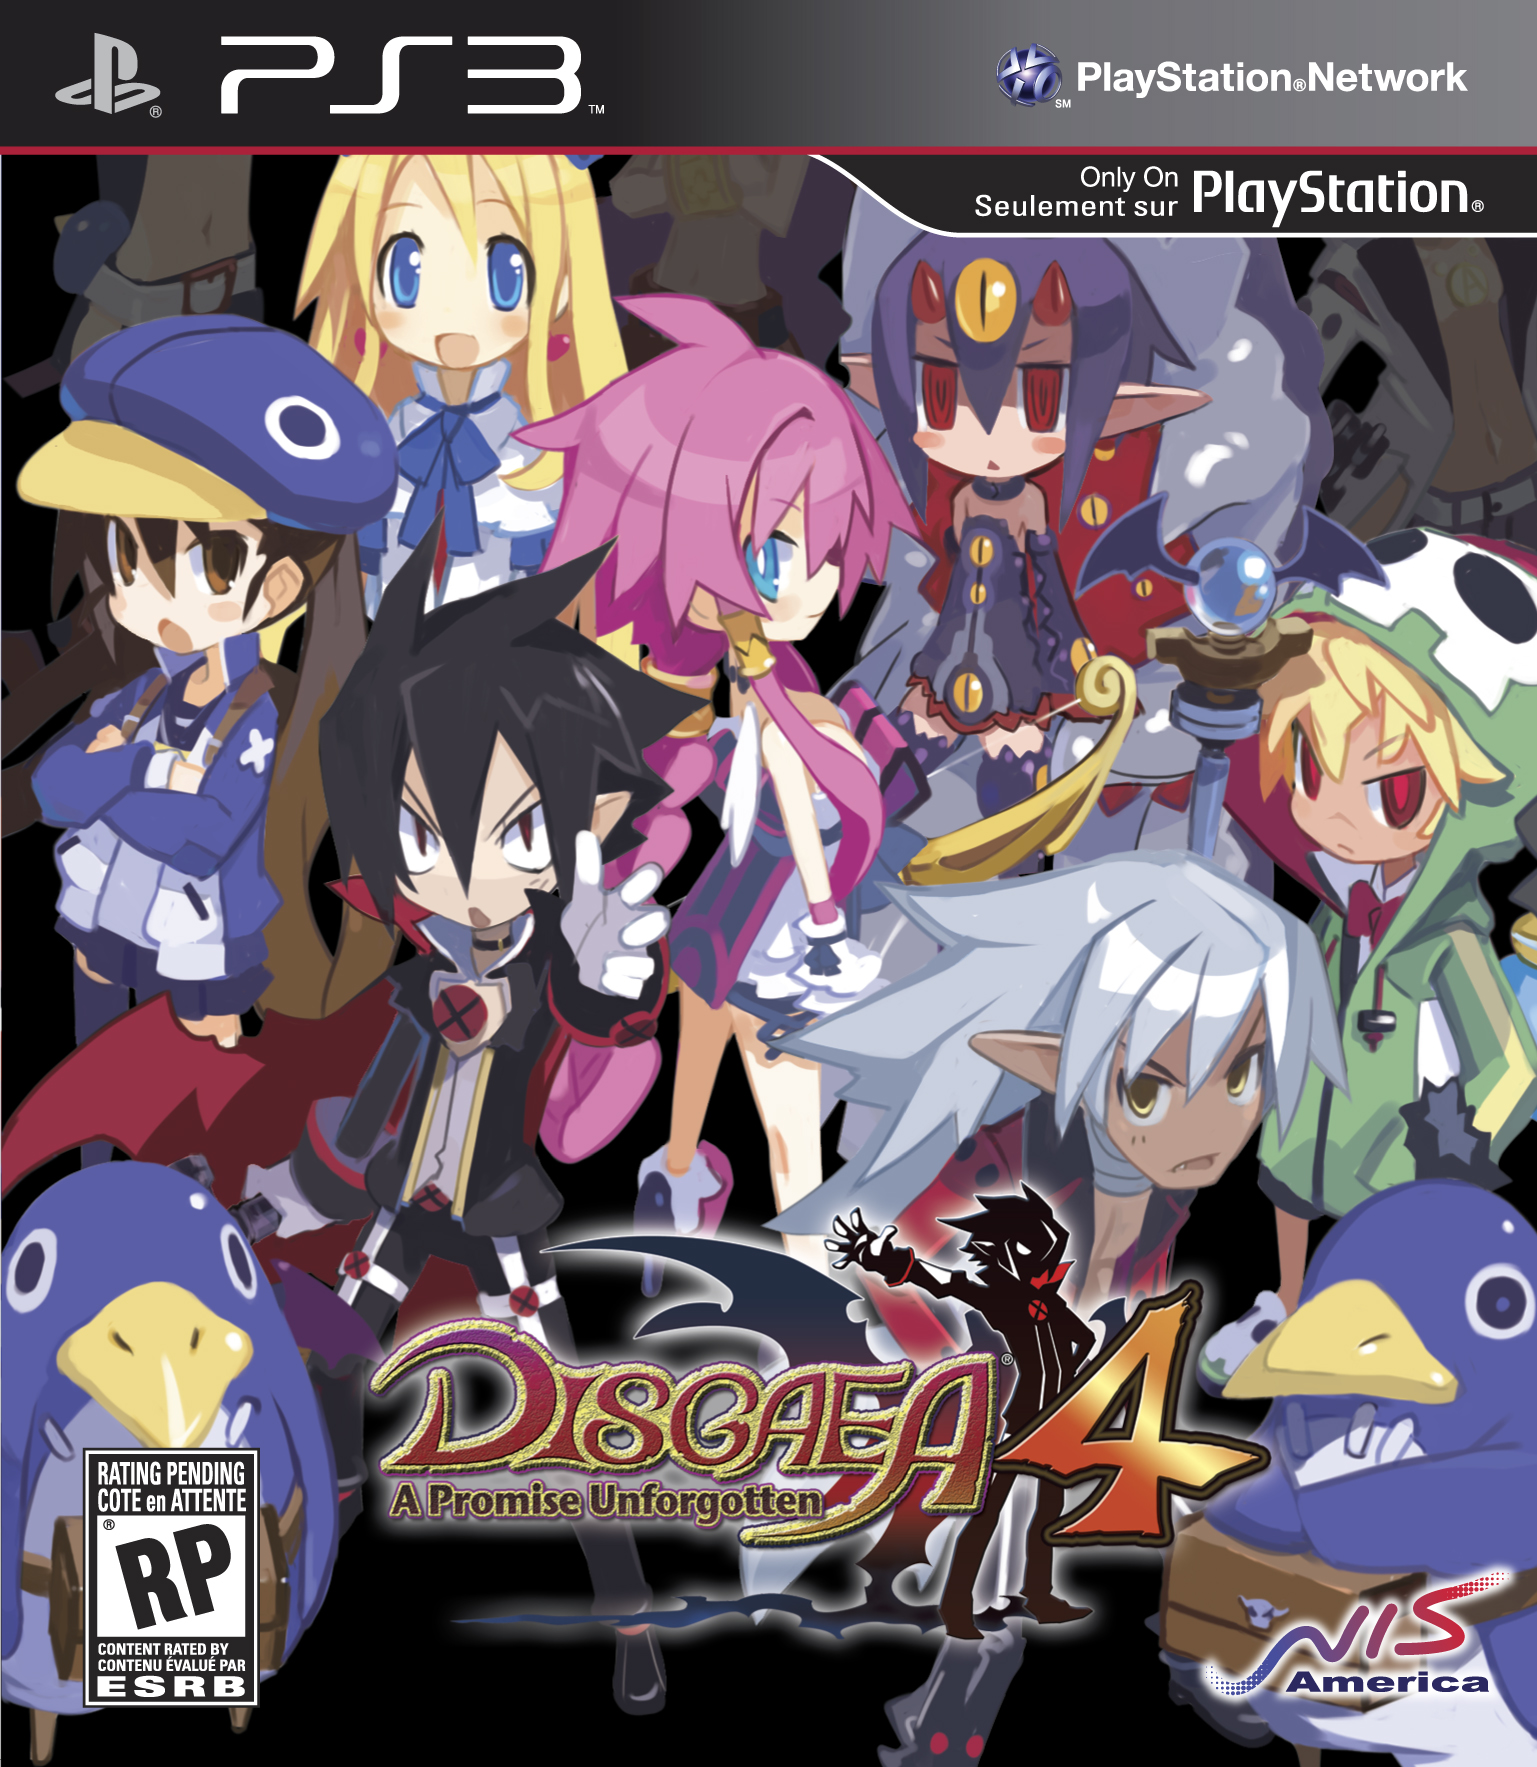 Disgaea 4 A Promise Unforgotten PS3 Review Brutal Gamer